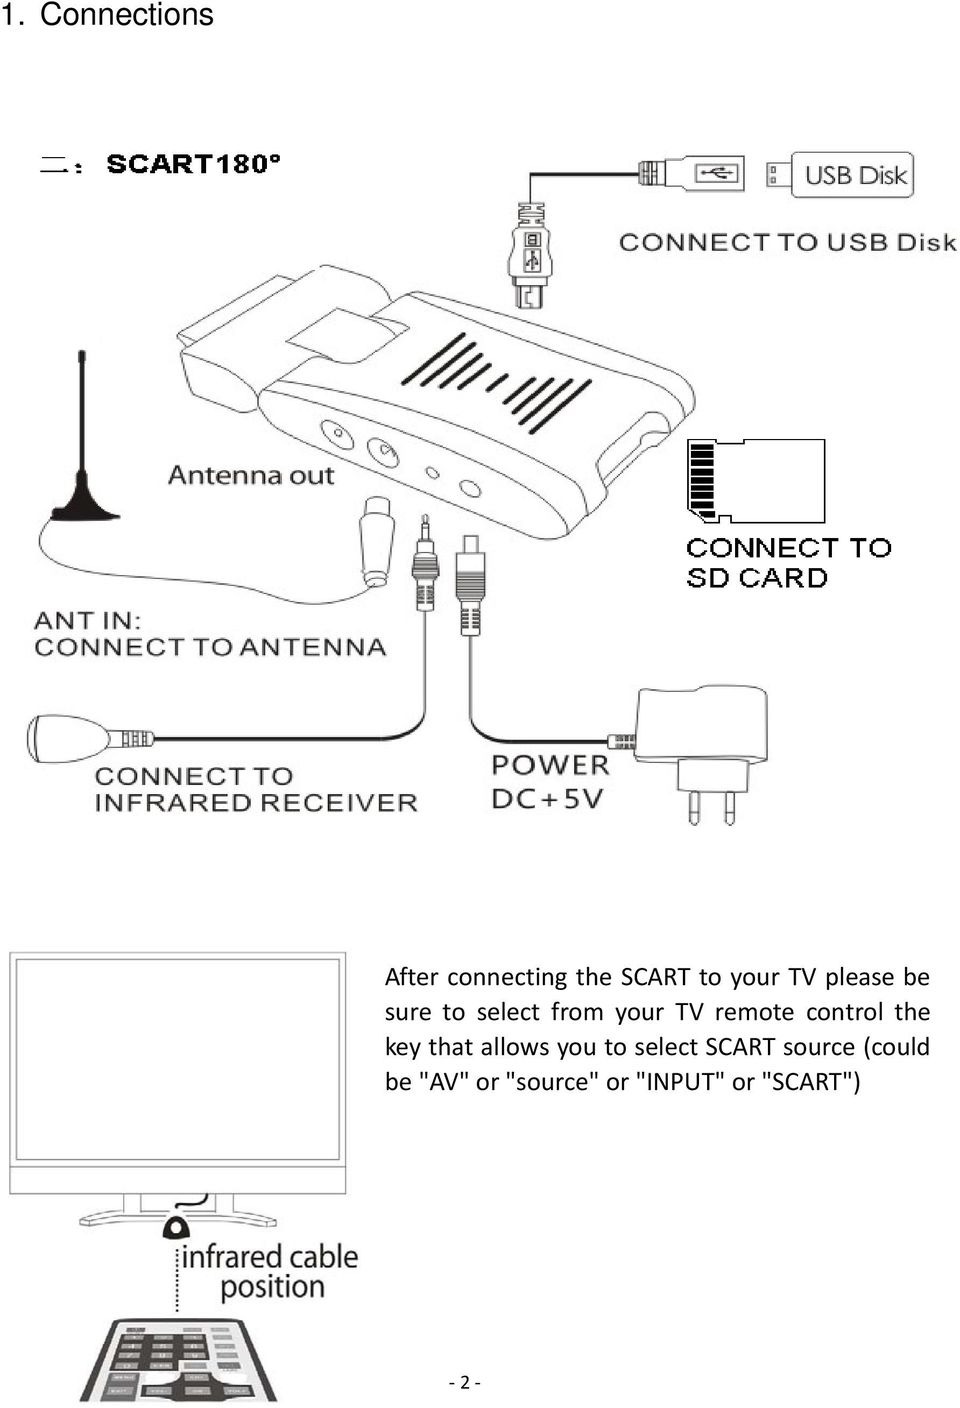 control the key that allows you to select SCART